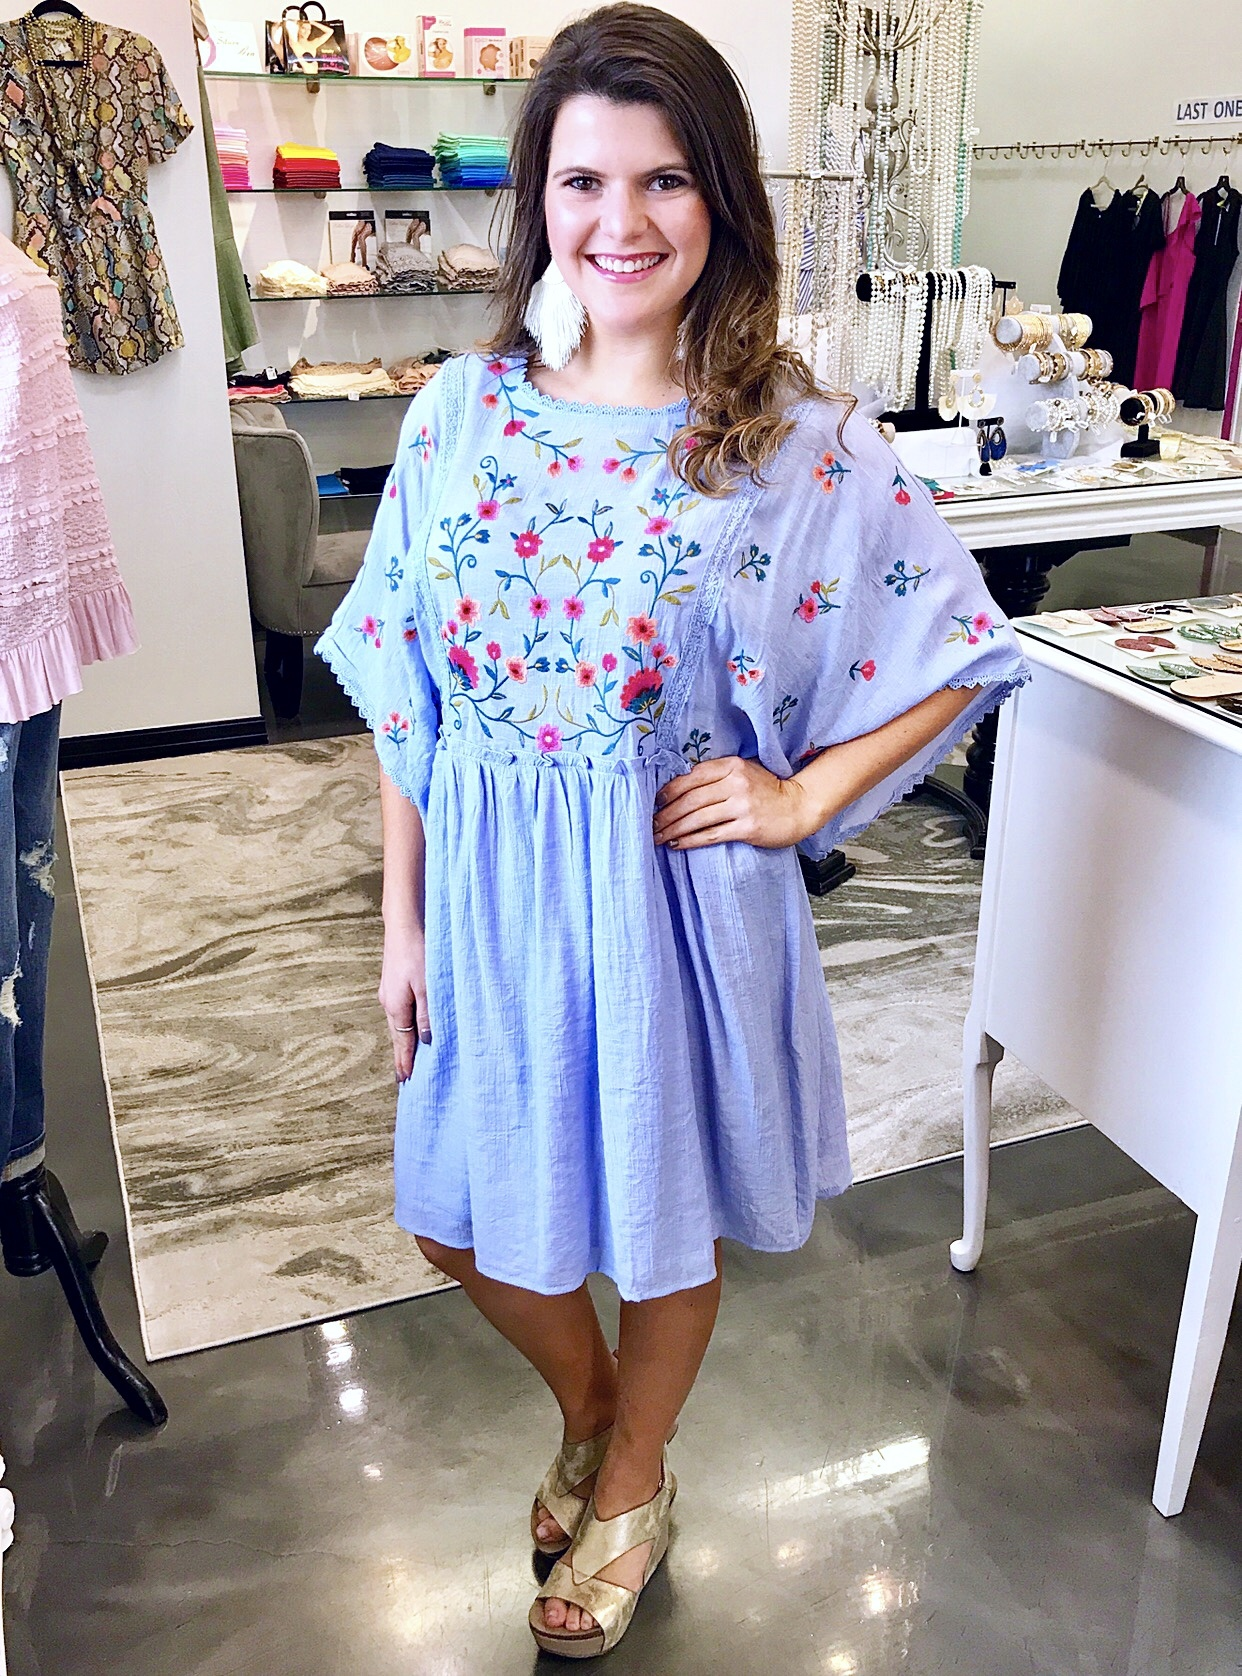 Baby Blue Floral Embroidered Babydoll Dress with Crochet Trim